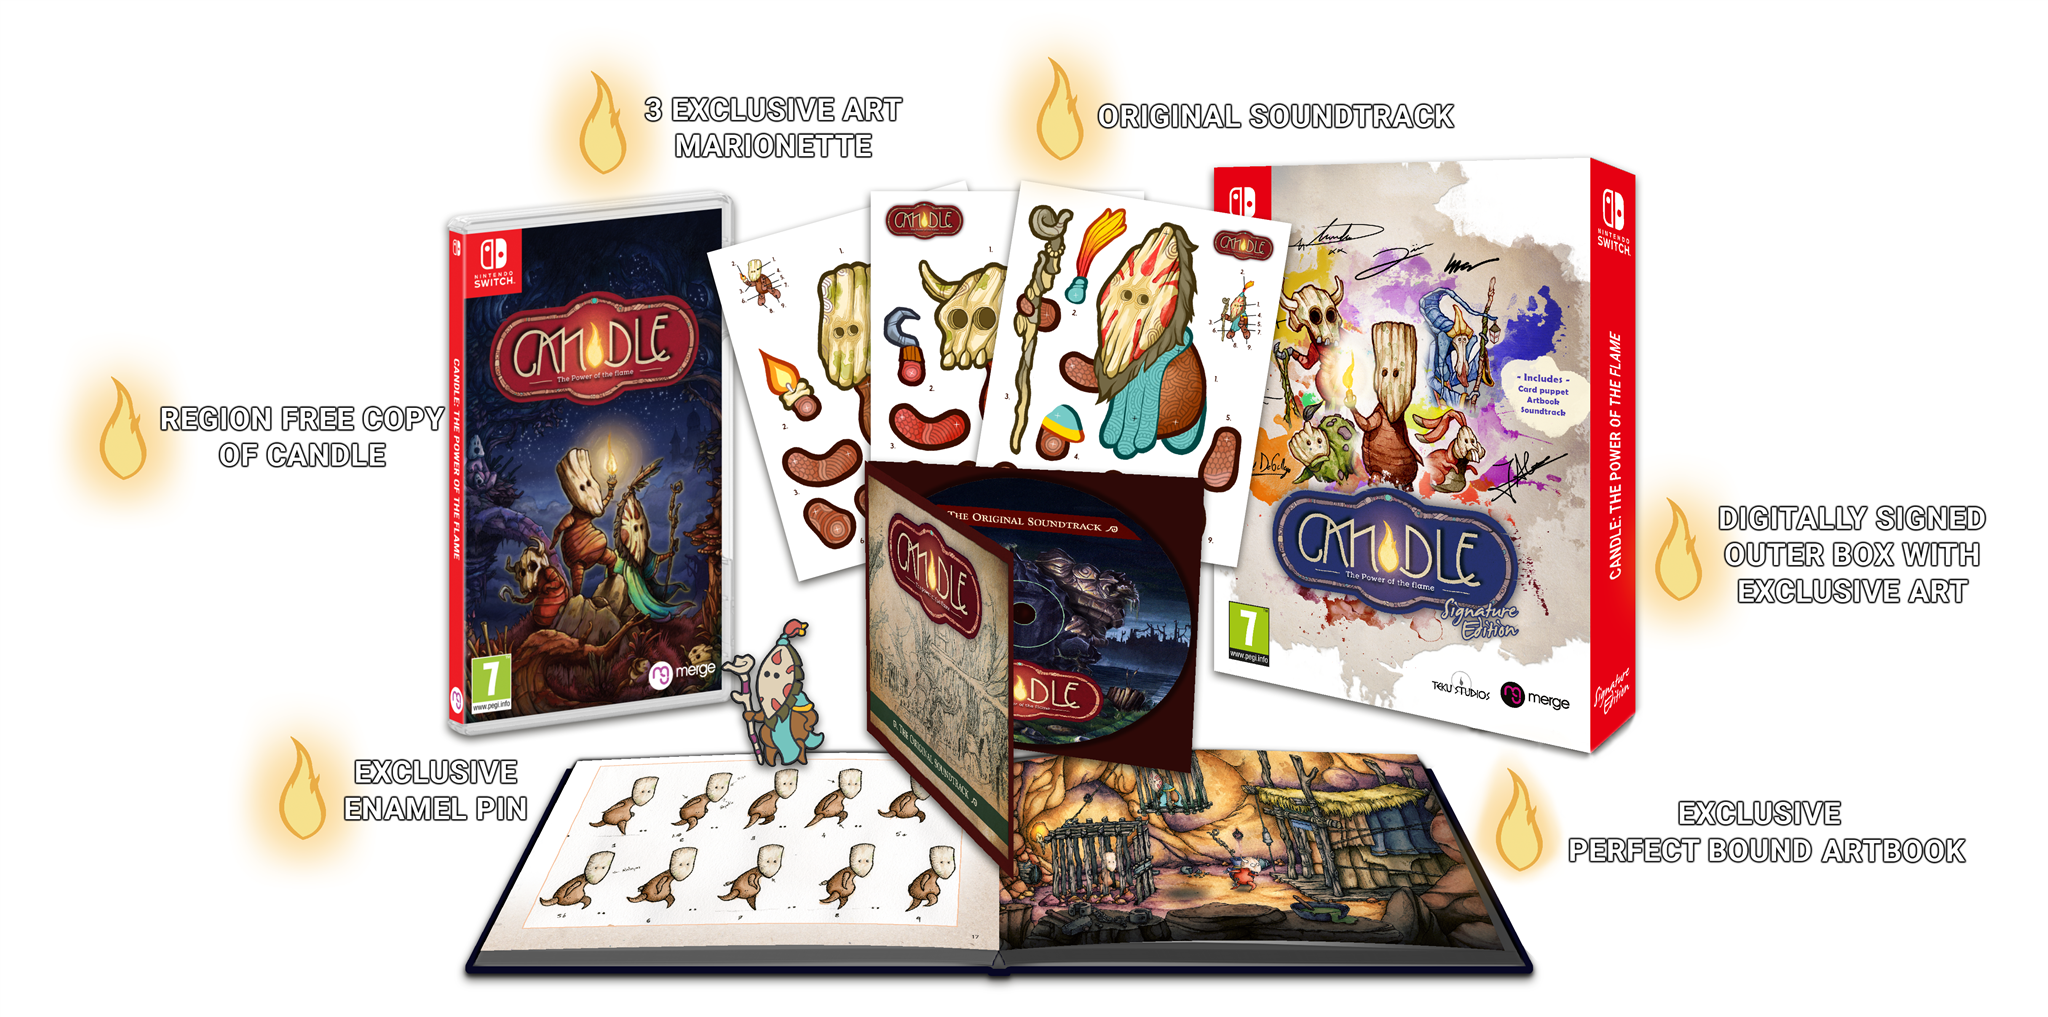 Candle: The Power of the Flame - Signature Edition (Switch) - Signature Edition Games